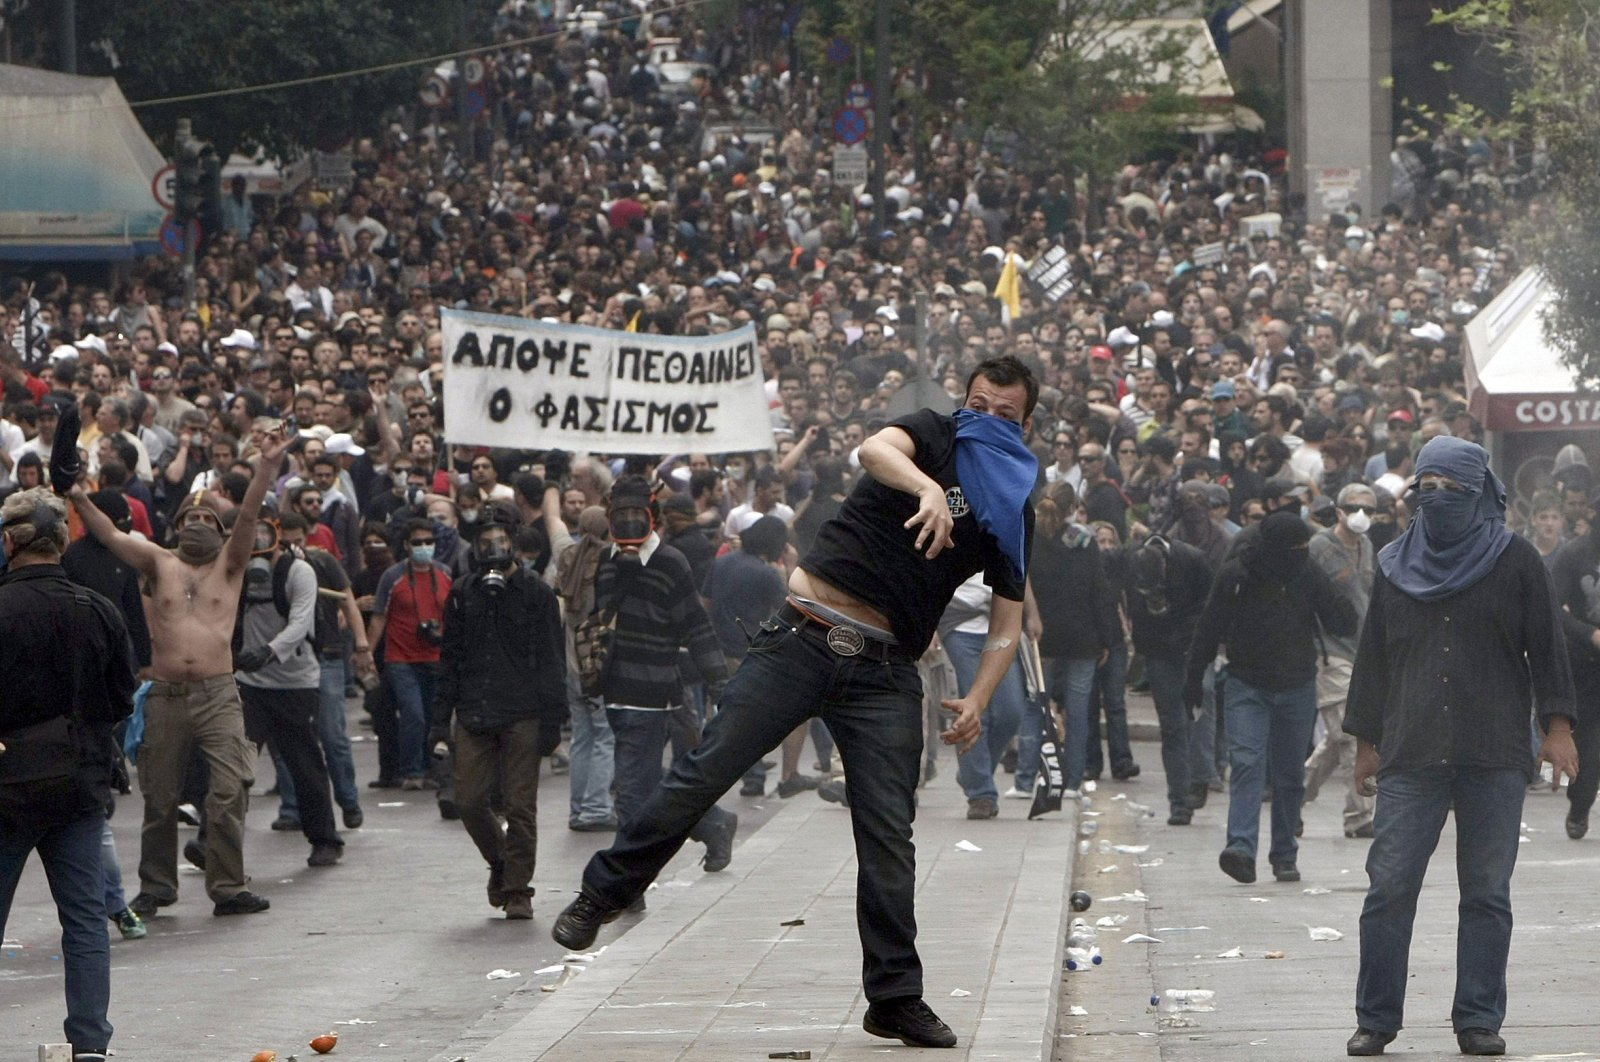 Demonstartors hurl projectiles at riot police near the Greek parliament in Athens during a nationwide strike in Greece, May 5, 2010. (Reuters Photo)